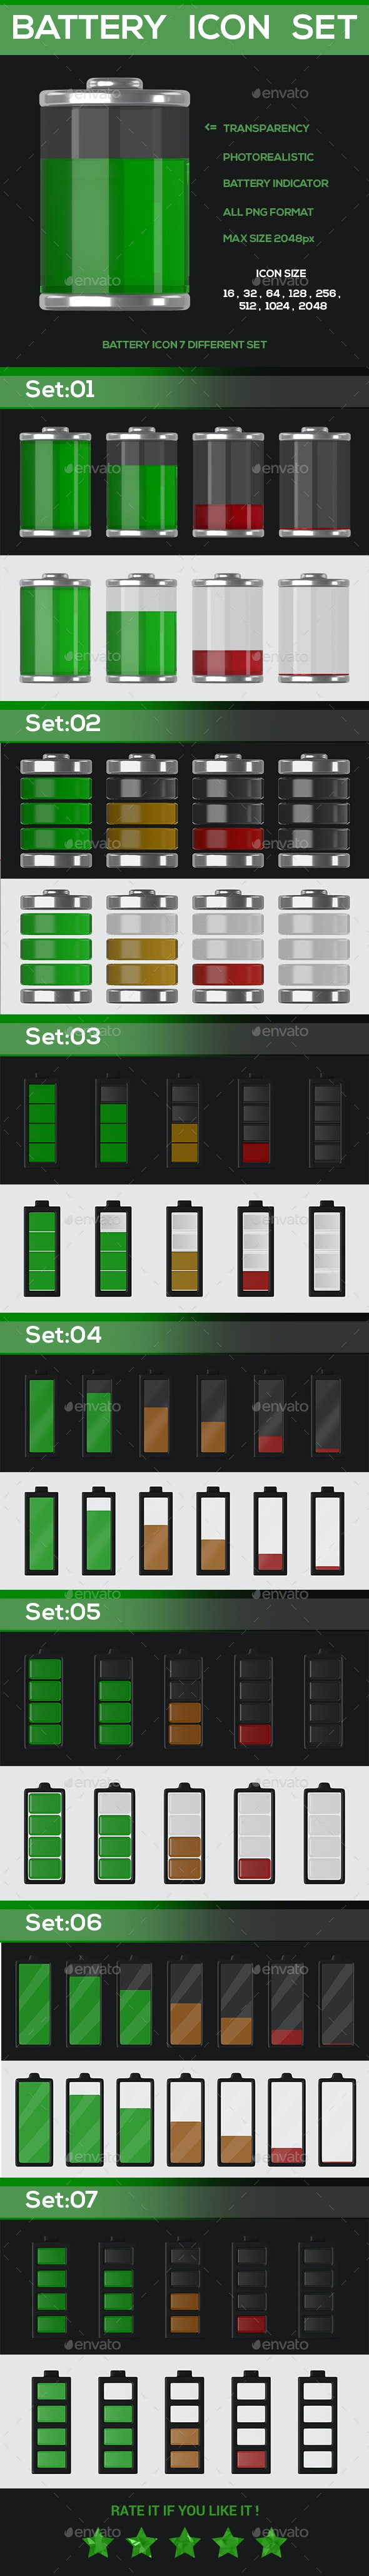 Battery icon set - Technology Icons